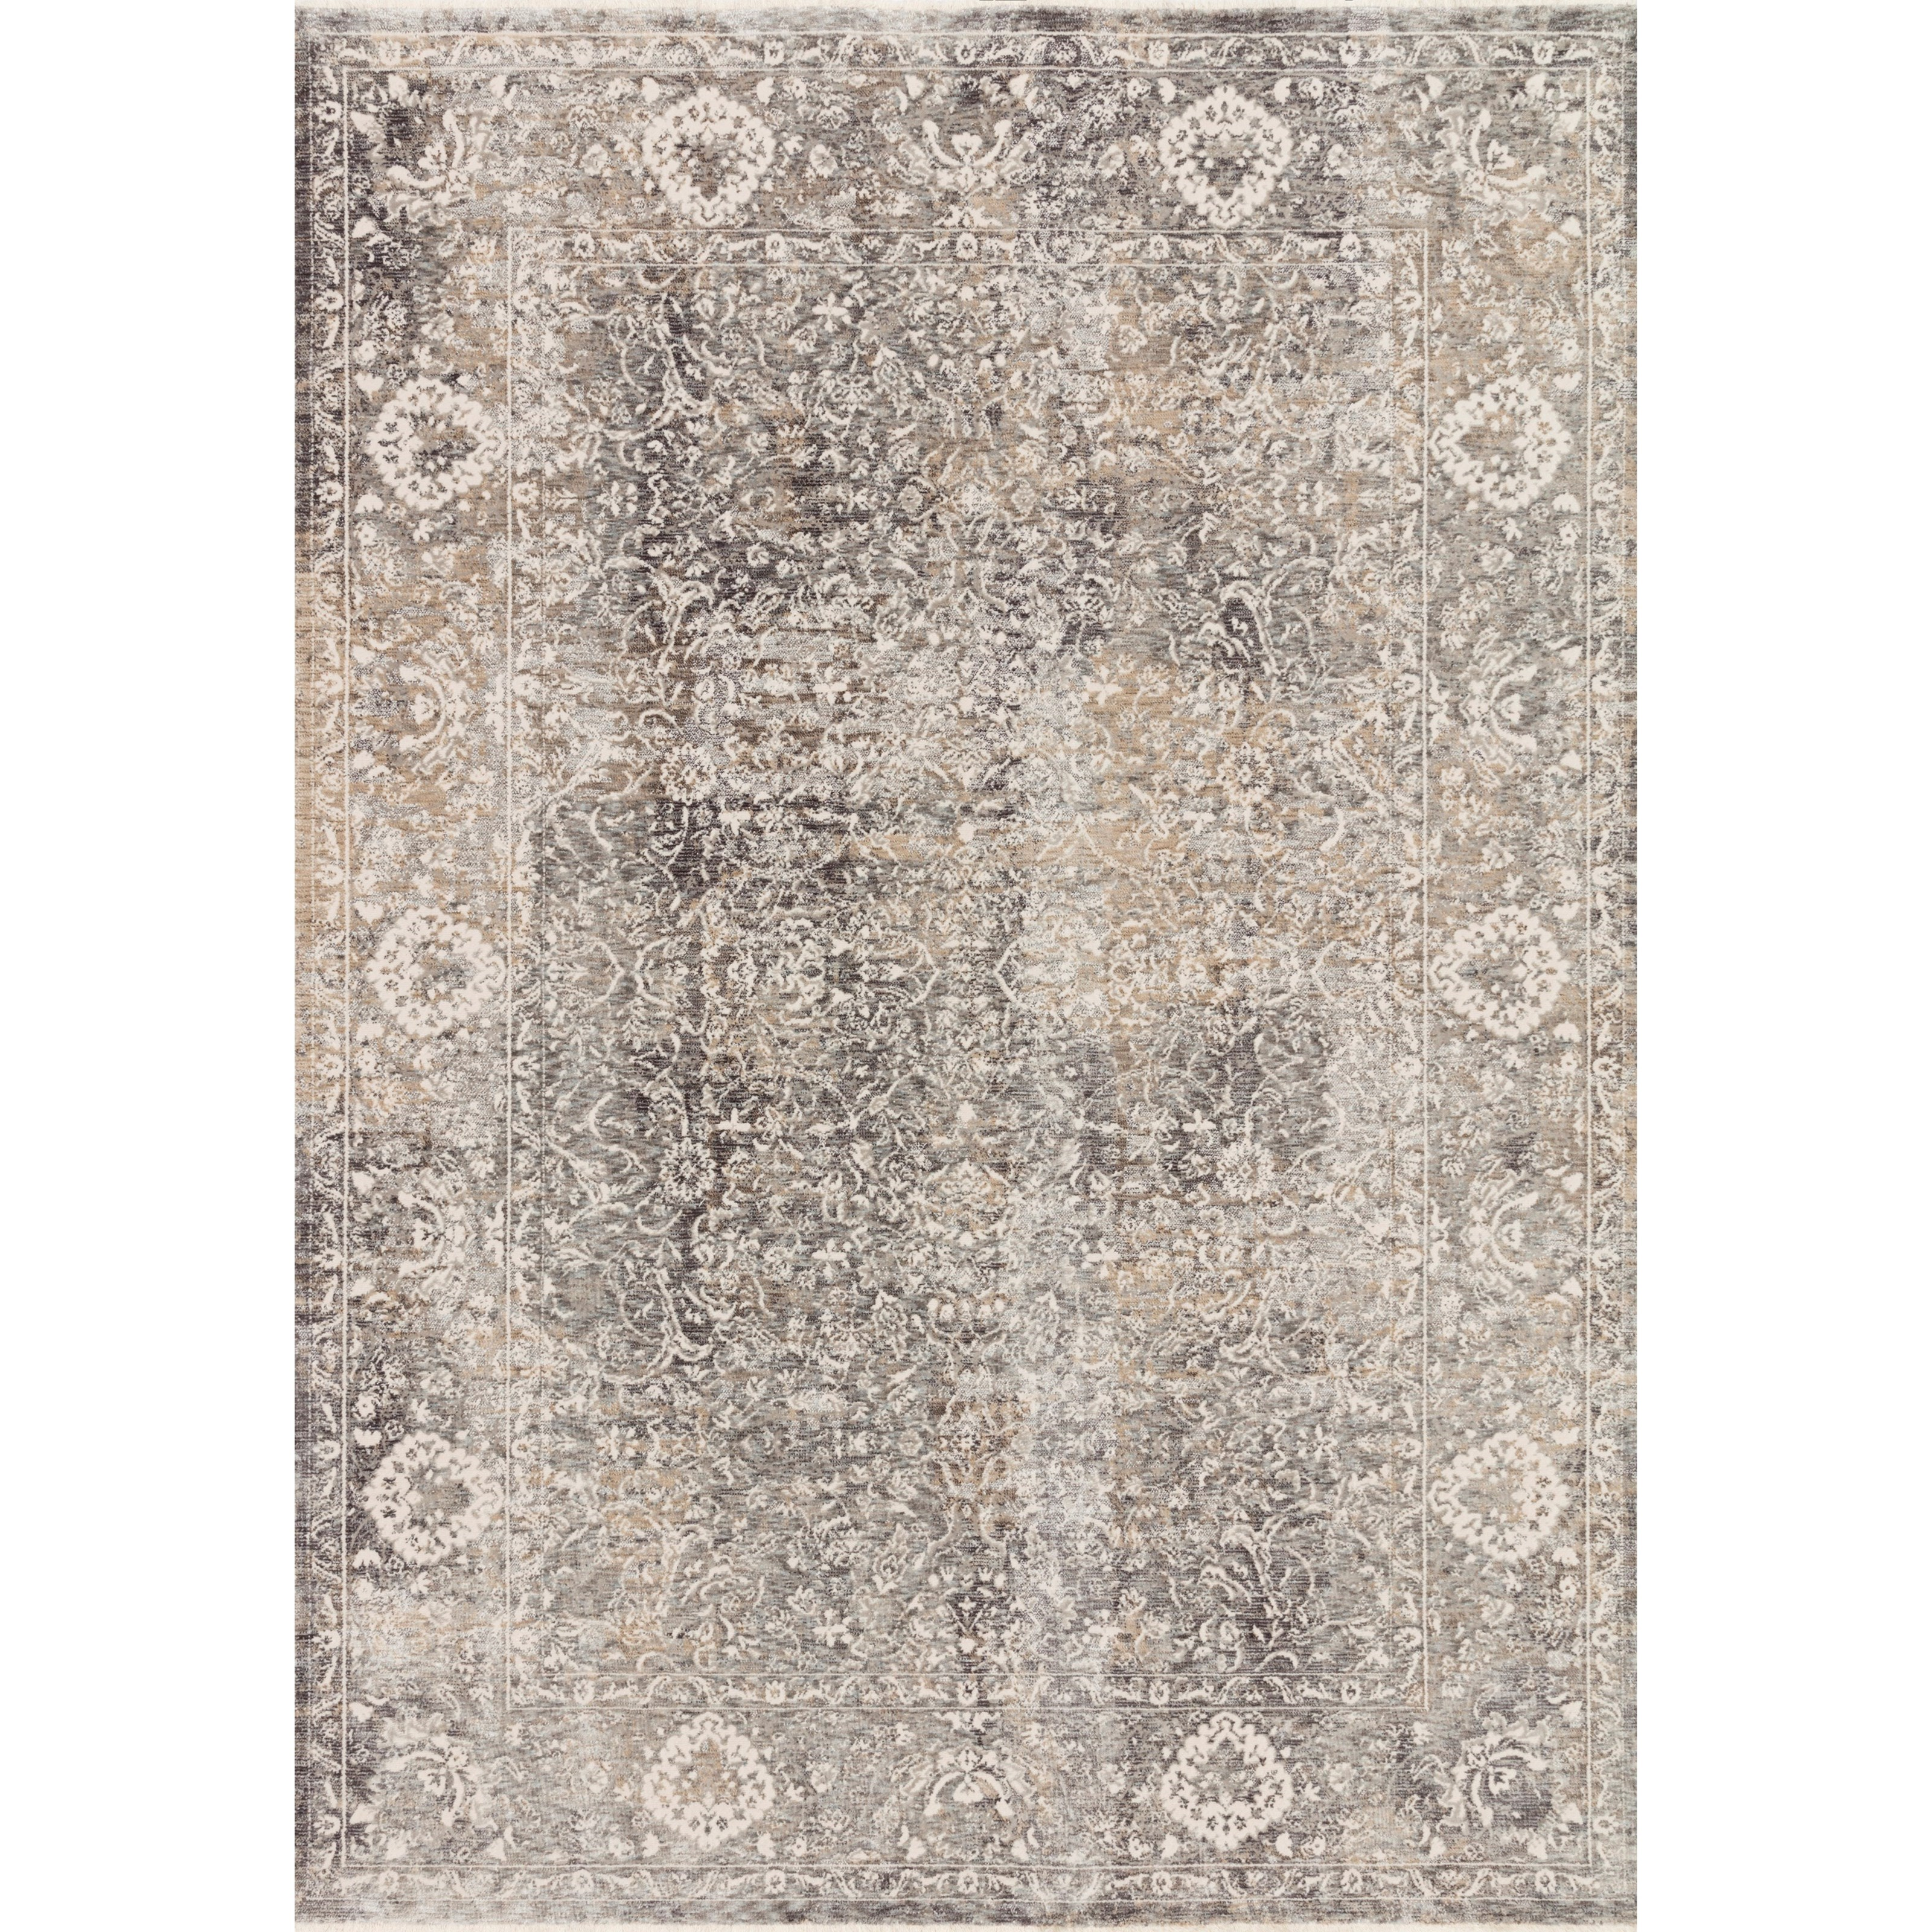 """Homage 2'0"""" x 3'4"""" Stone / Ivory Rug by Loloi Rugs at Virginia Furniture Market"""